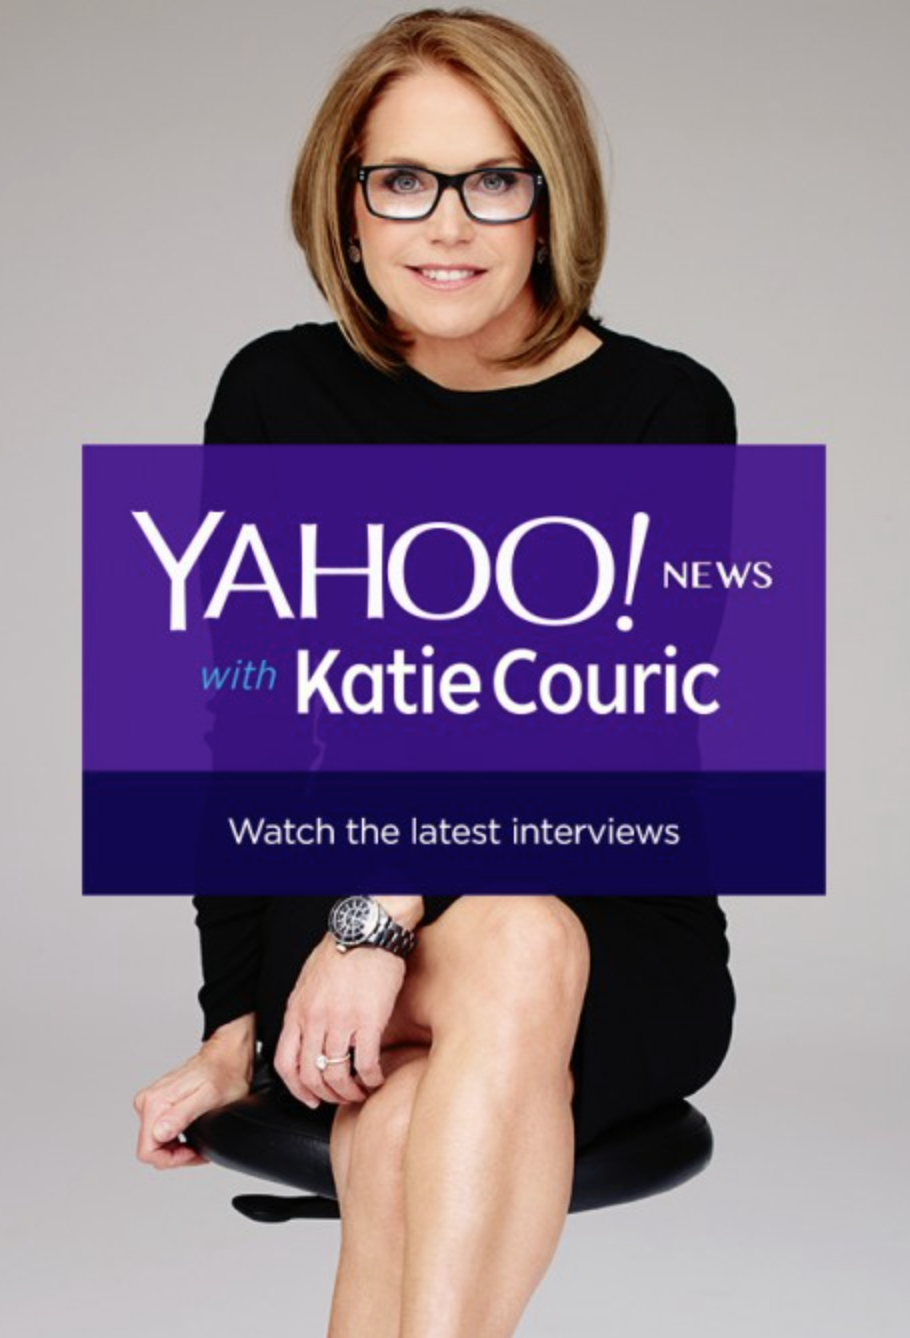 Are did katie couric get a boob job